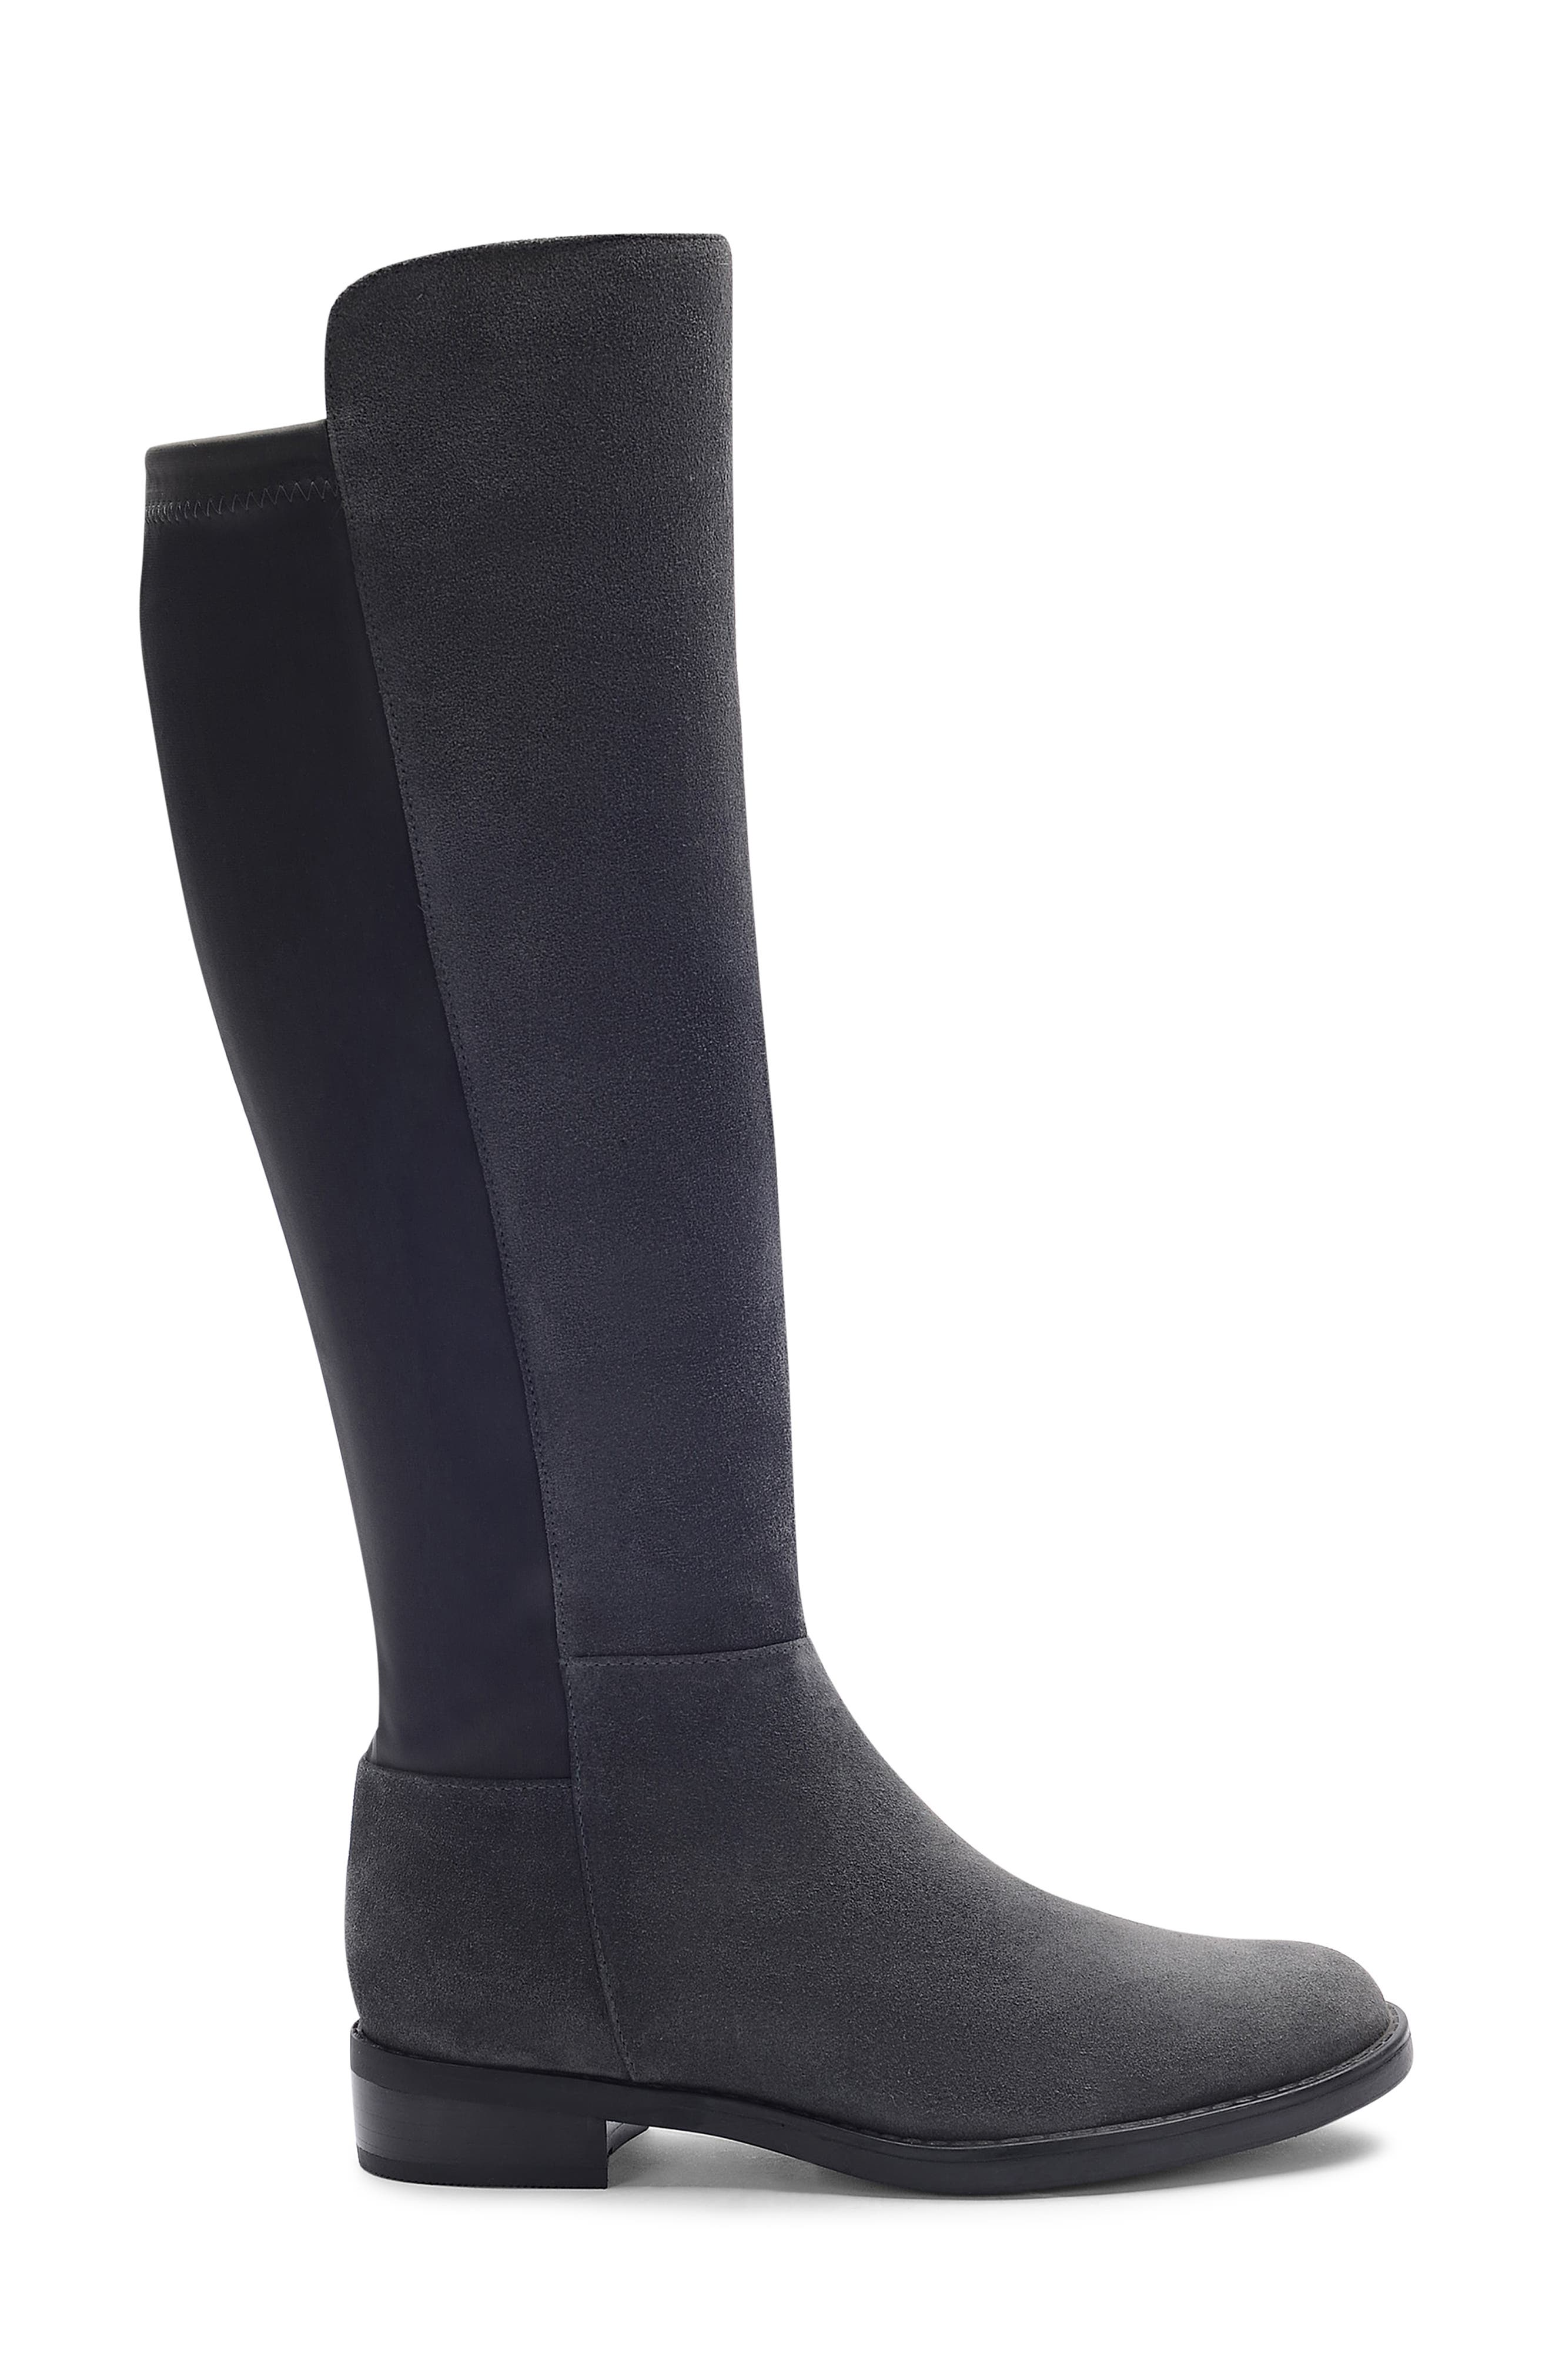 Ellie Waterproof Knee High Riding Boot,                             Alternate thumbnail 3, color,                             DARK GREY SUEDE